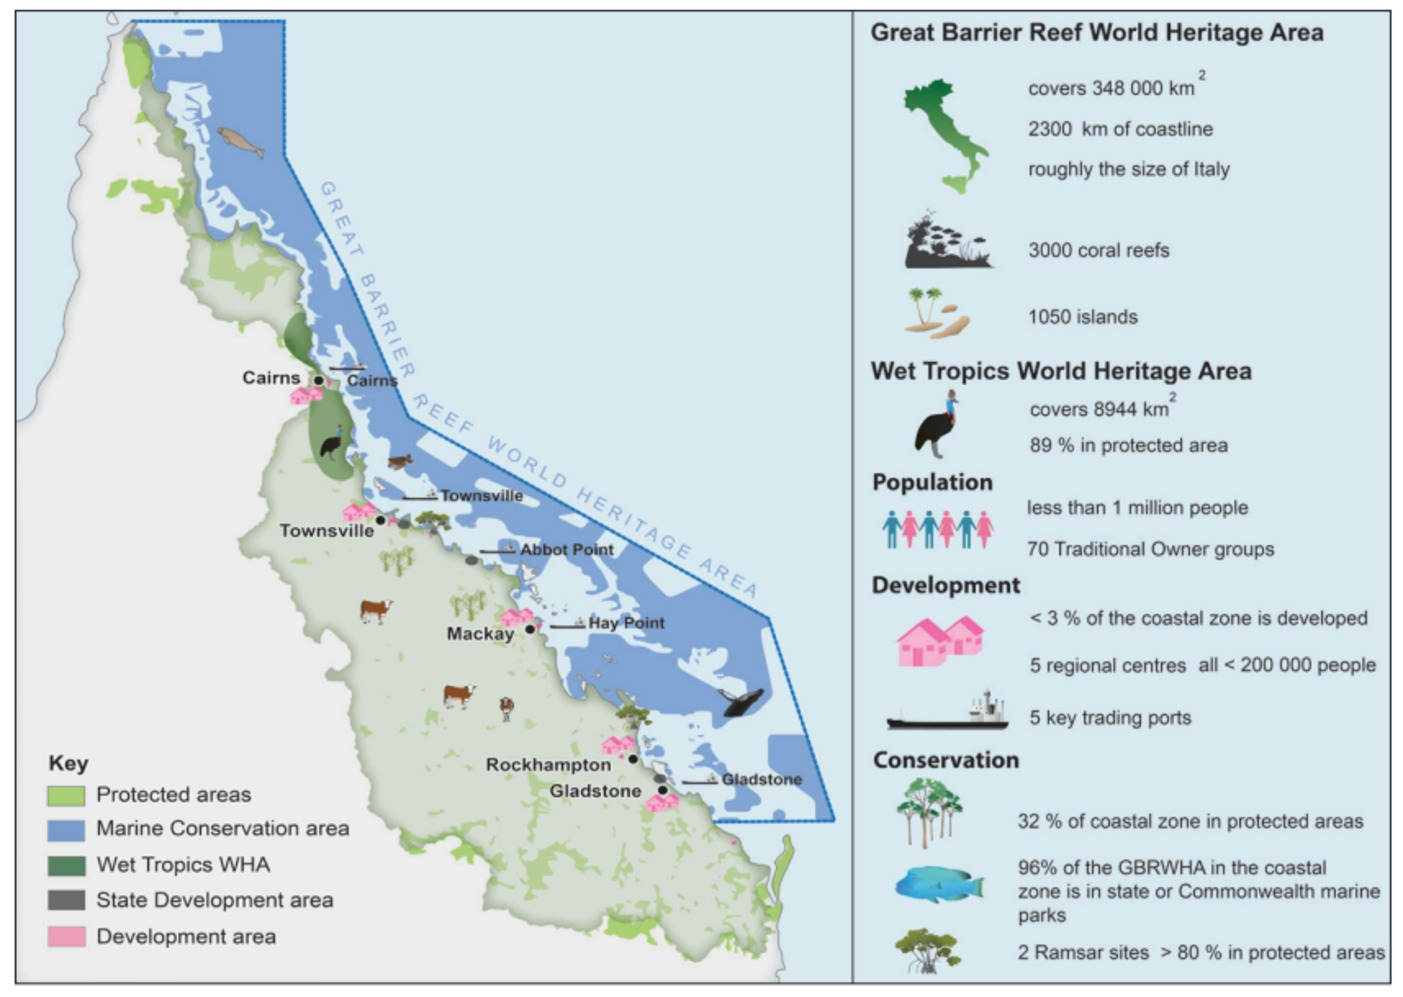 Australia courting danger with the great barrier reef thebull australia courting danger with the great barrier reef thebull gumiabroncs Images